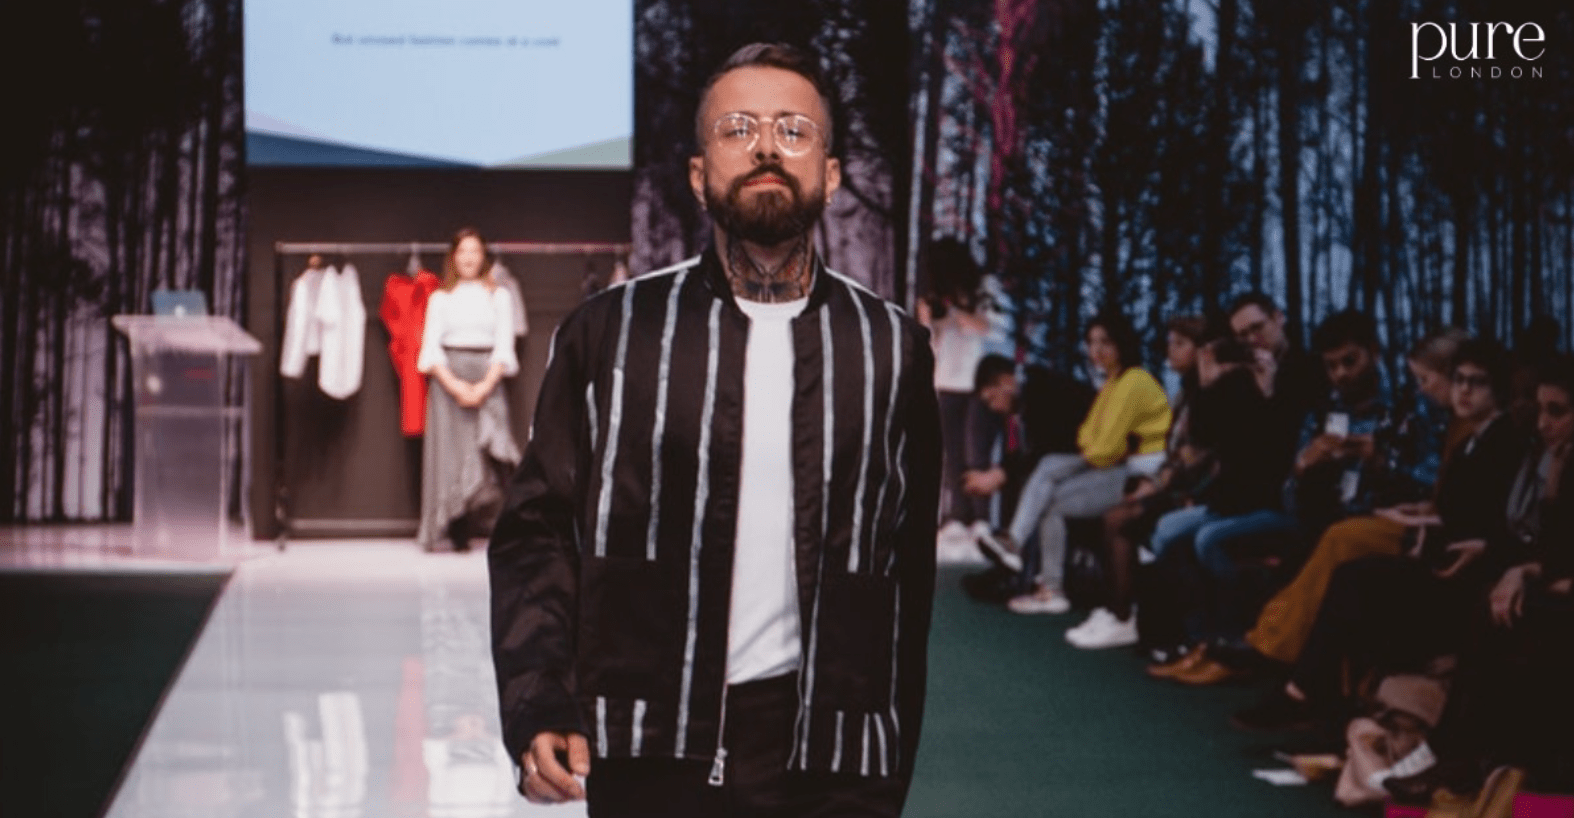 Men's Sustainable Styling Looks – Pure London Feb 2020